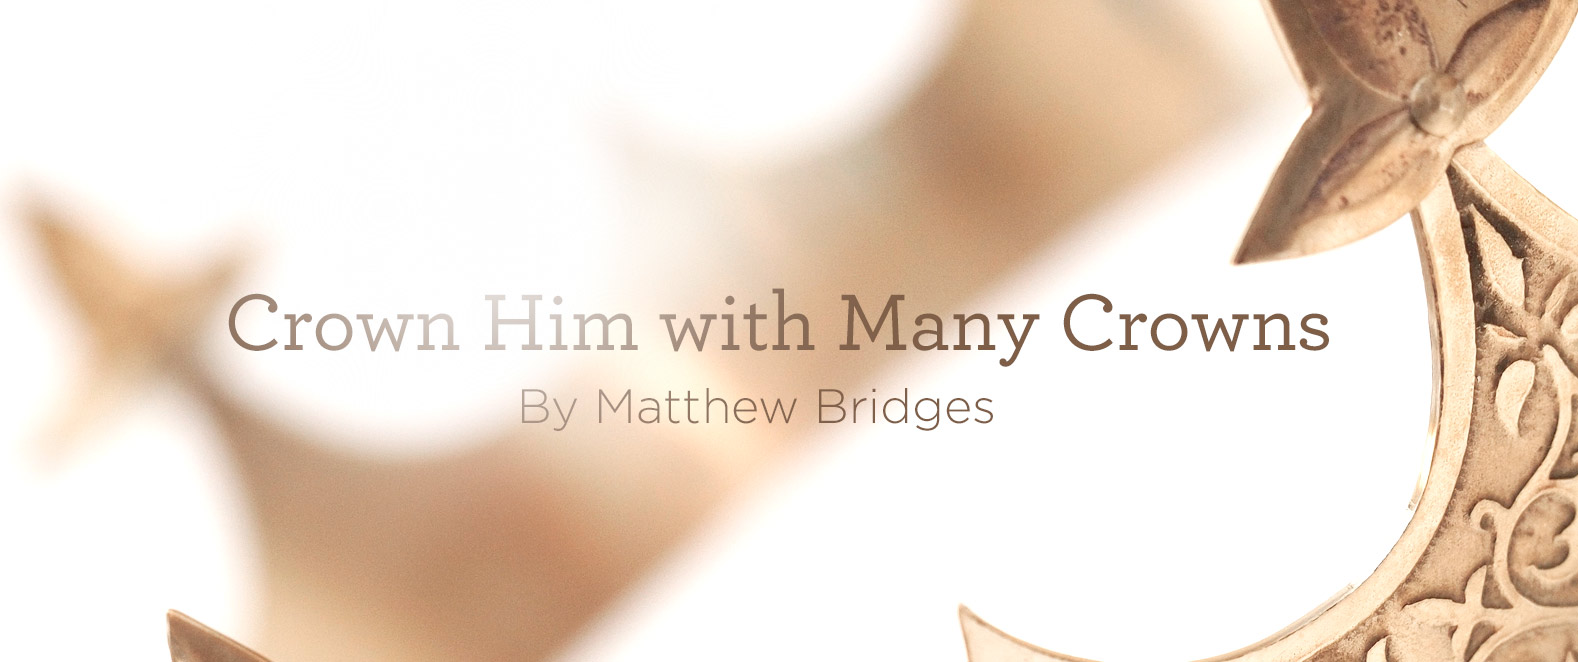 """thumbnail image for Hymn: """"Crown Him with Many Crowns"""" by Matthew Bridges"""